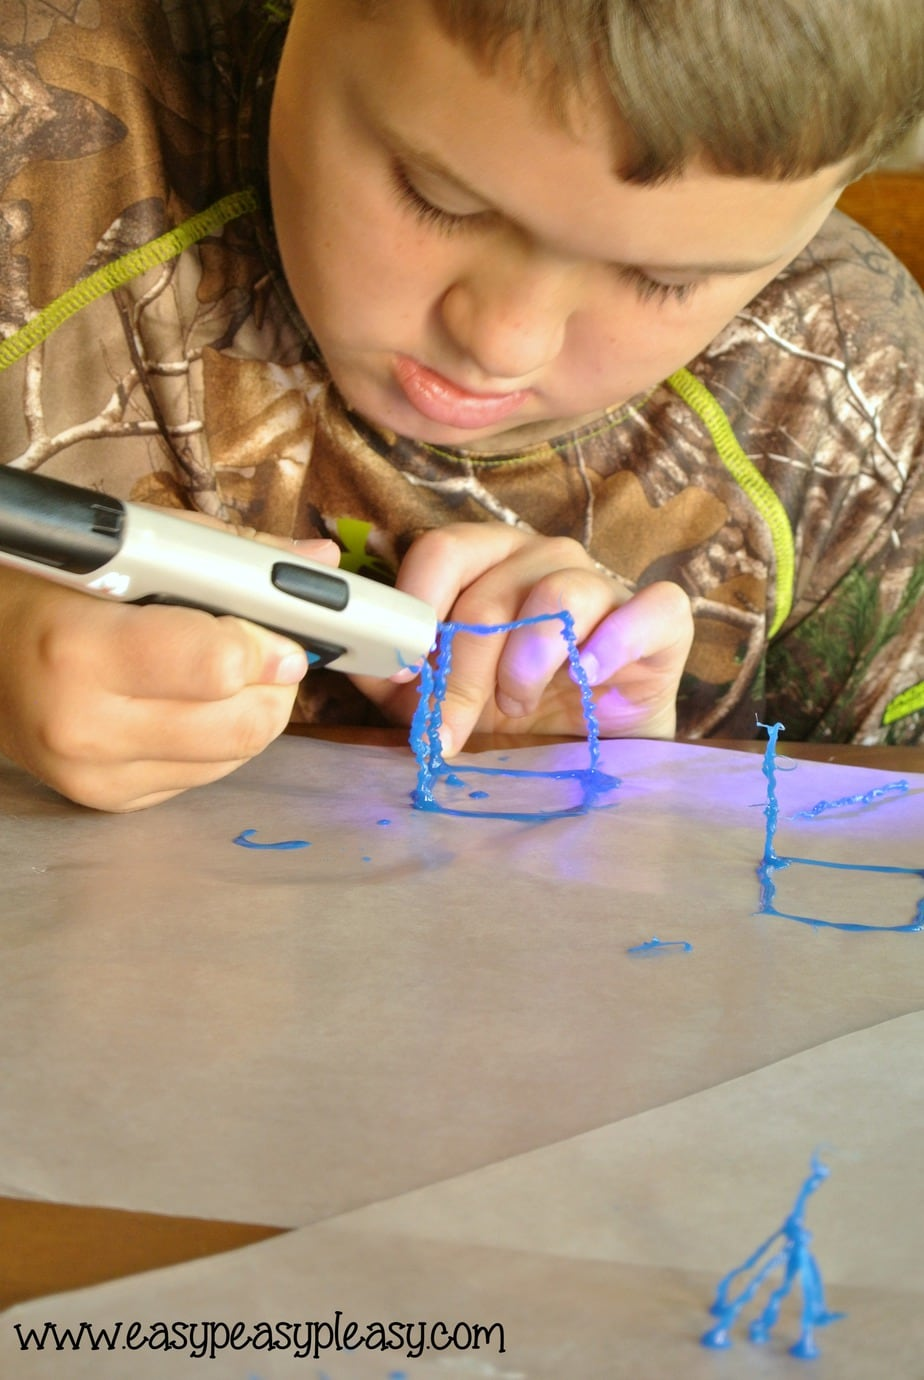 (Ad) Limit TV time and watch your children's imagination take on new heights with the AtmosFlare 3D Pen.